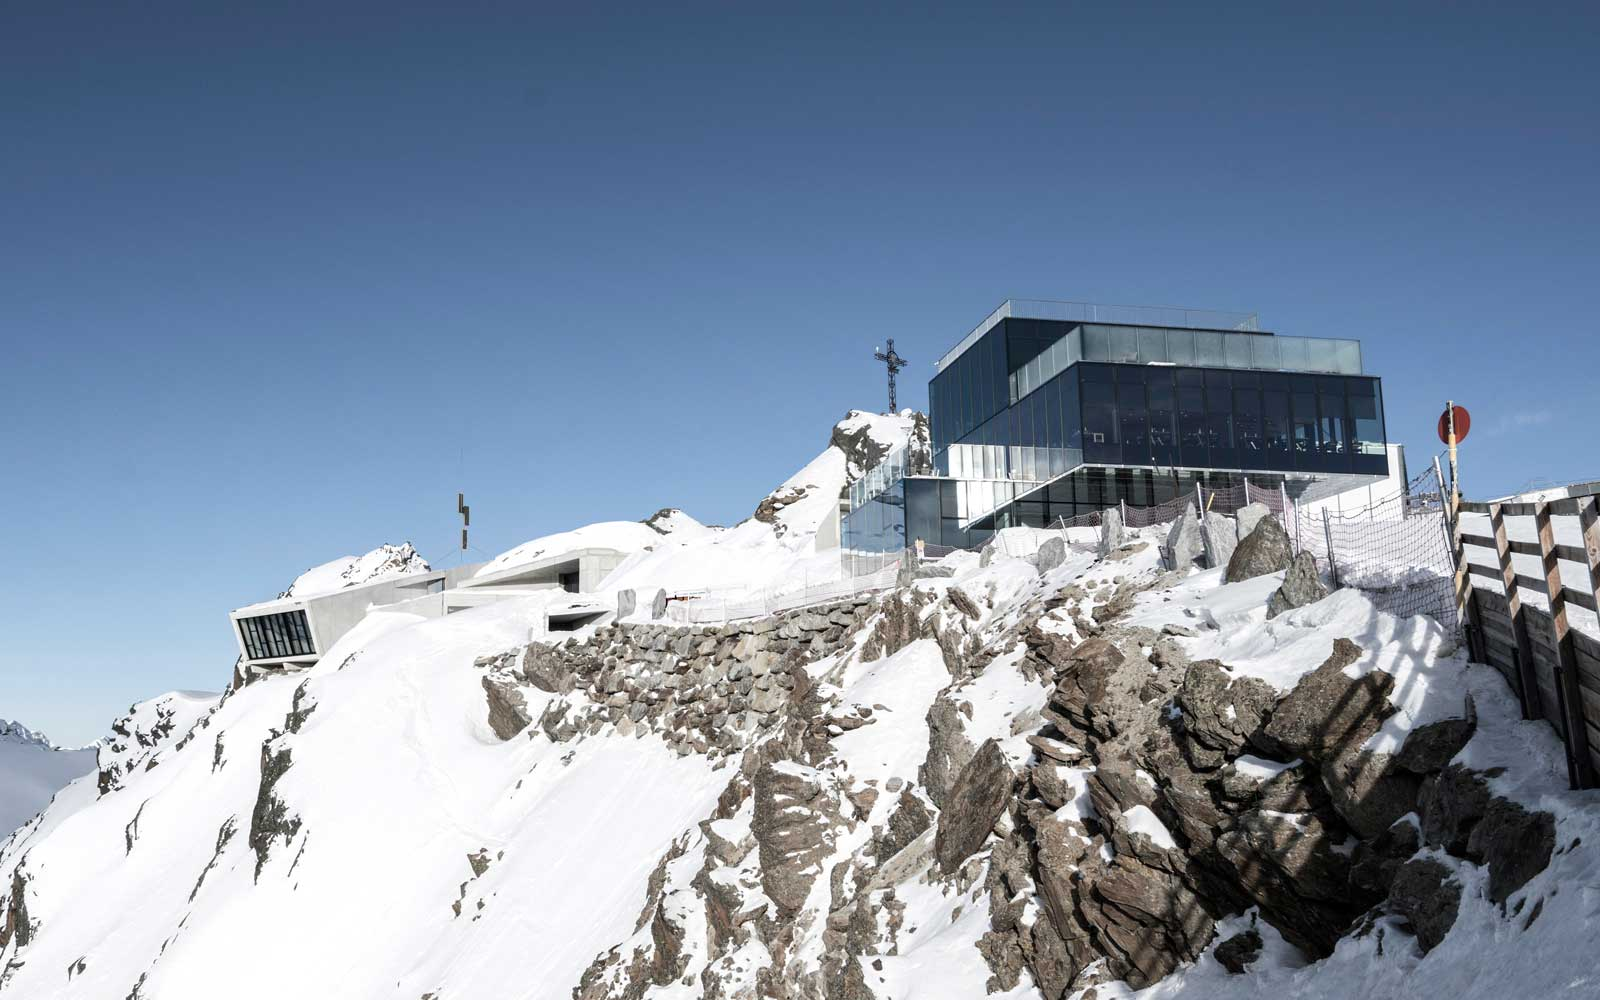 Exterior of the new James Bond attraction on a mountaintop in Austria